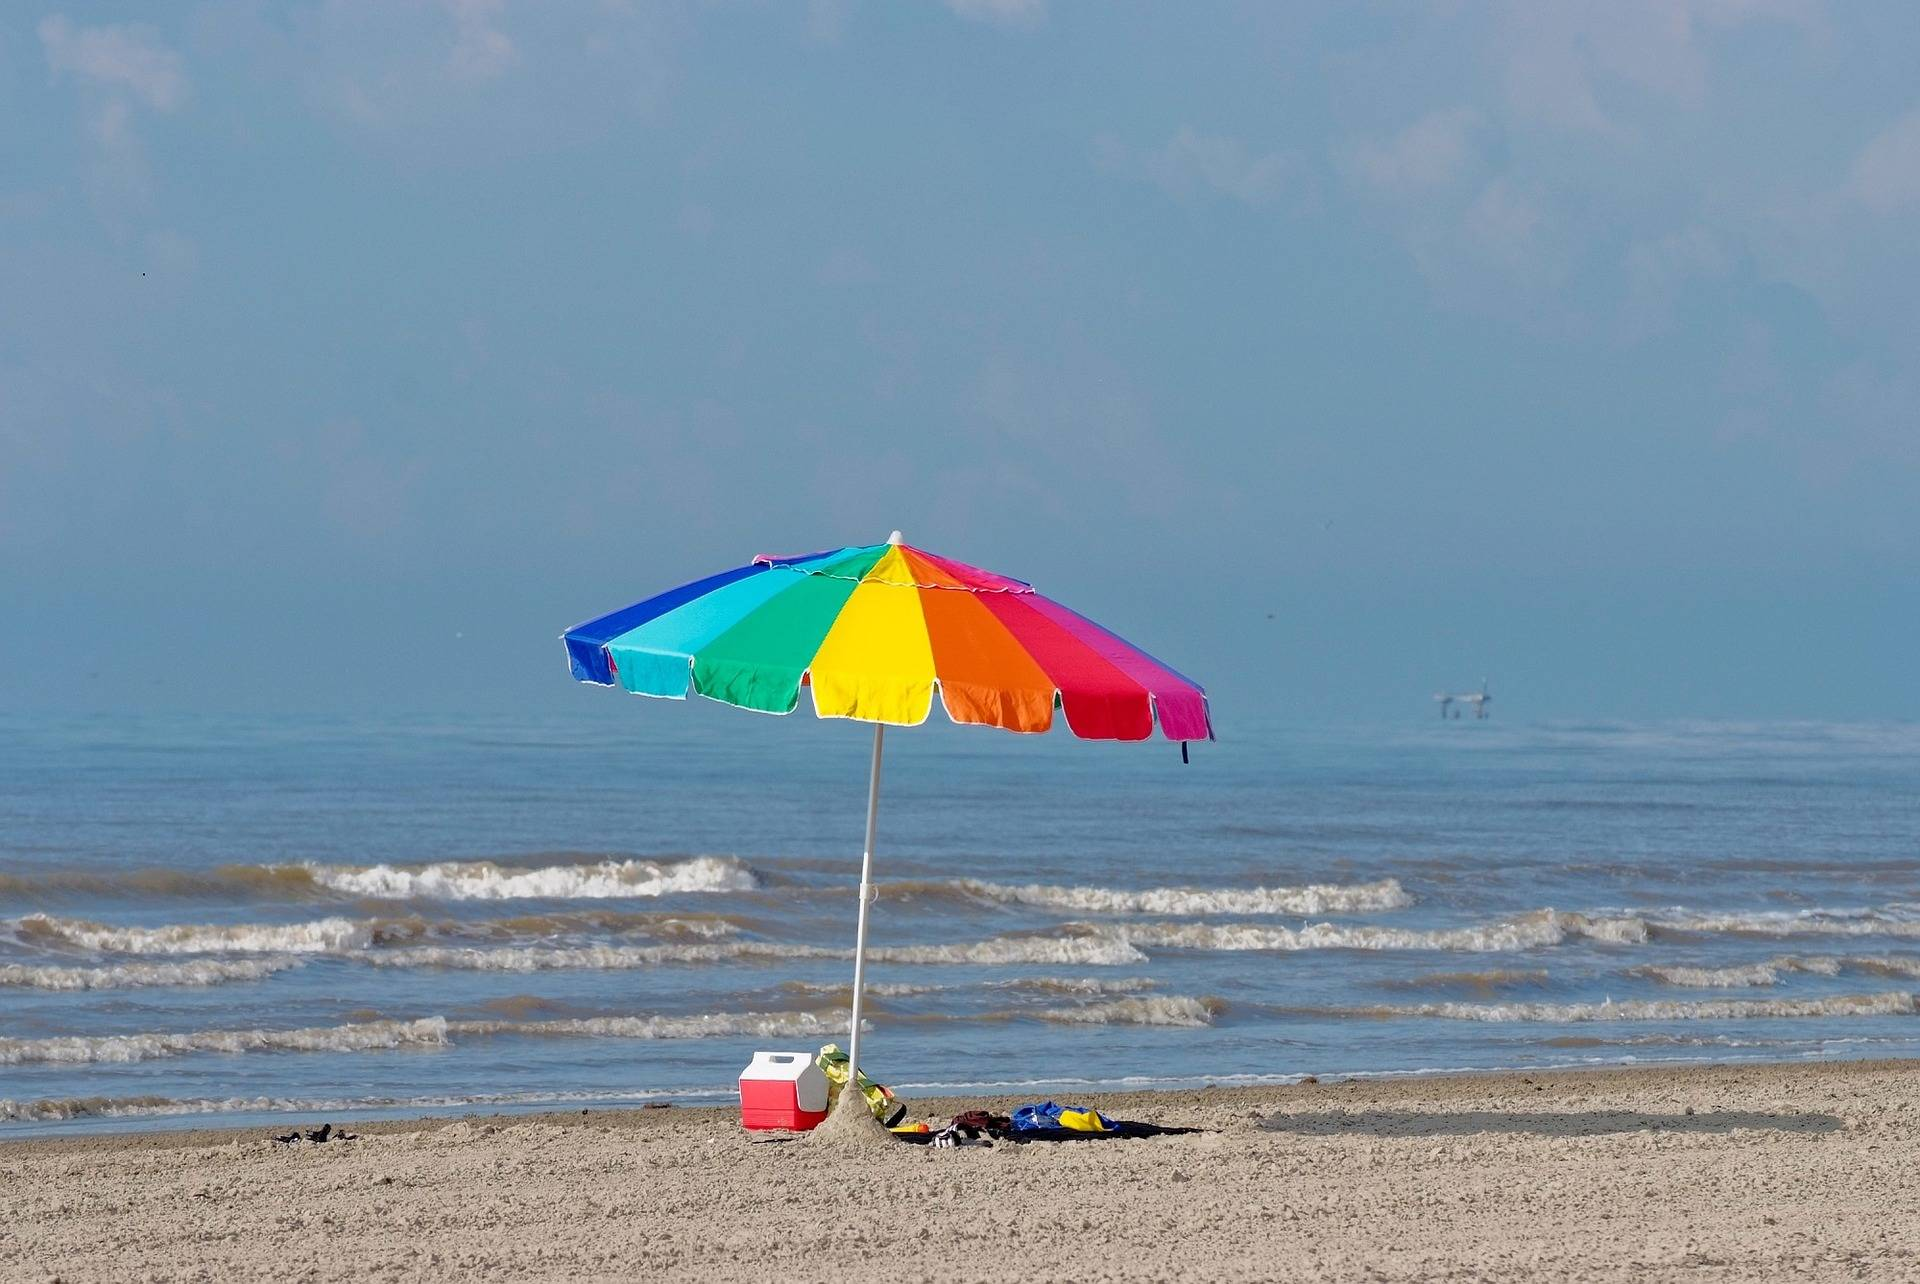 Tanning at a beach without sunscreen increases your risk of developing skin cancer, a B.C. doctor warns. (Pixabay photo)